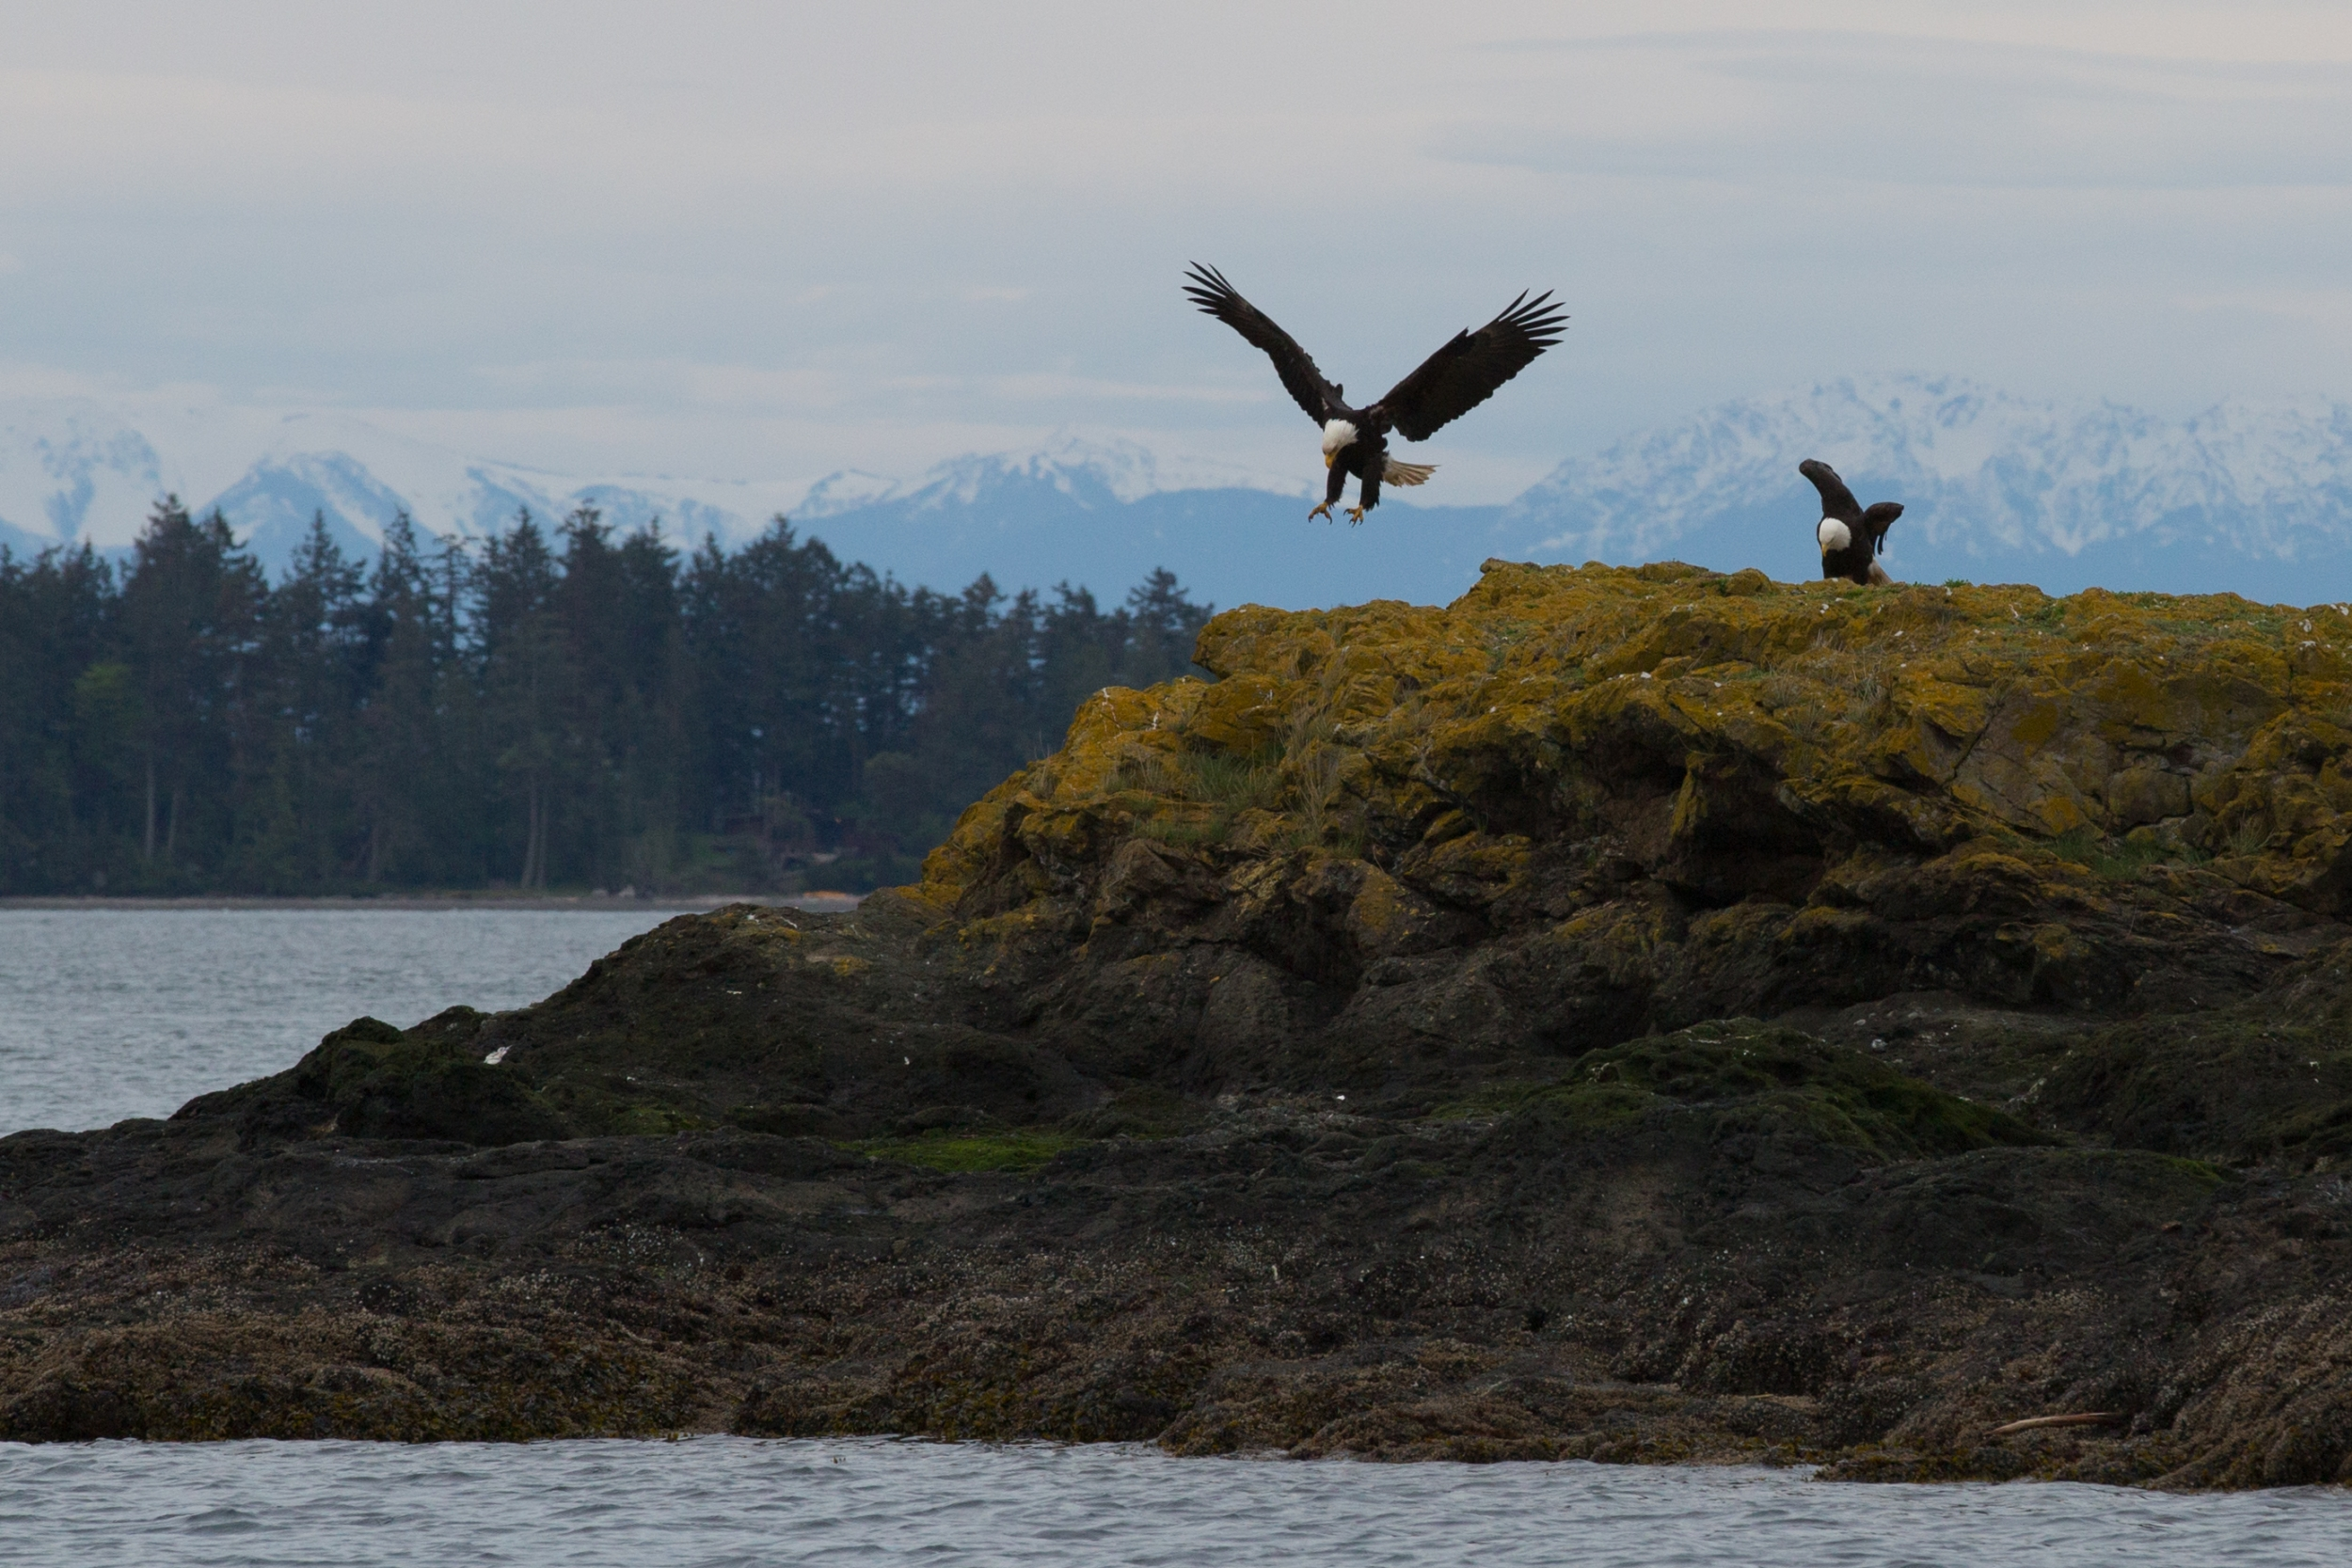 Reservations For Roche Harbor Orca Search 5 Hour Kayak Tour